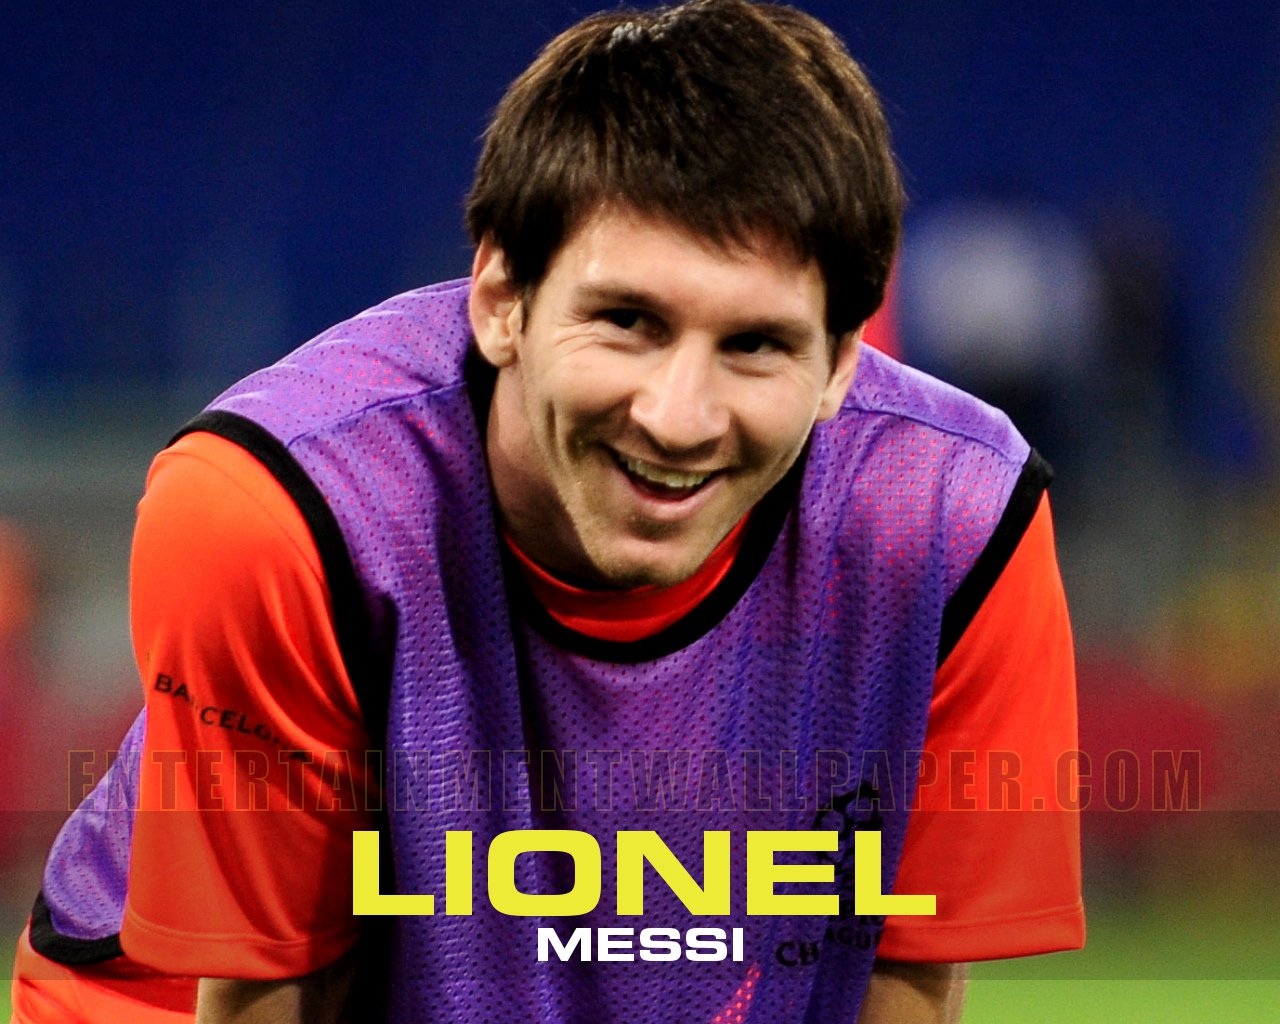 Players Lionel Messi Wallpapers HD   Messi Latest Wallpapers 2012 1280x1024